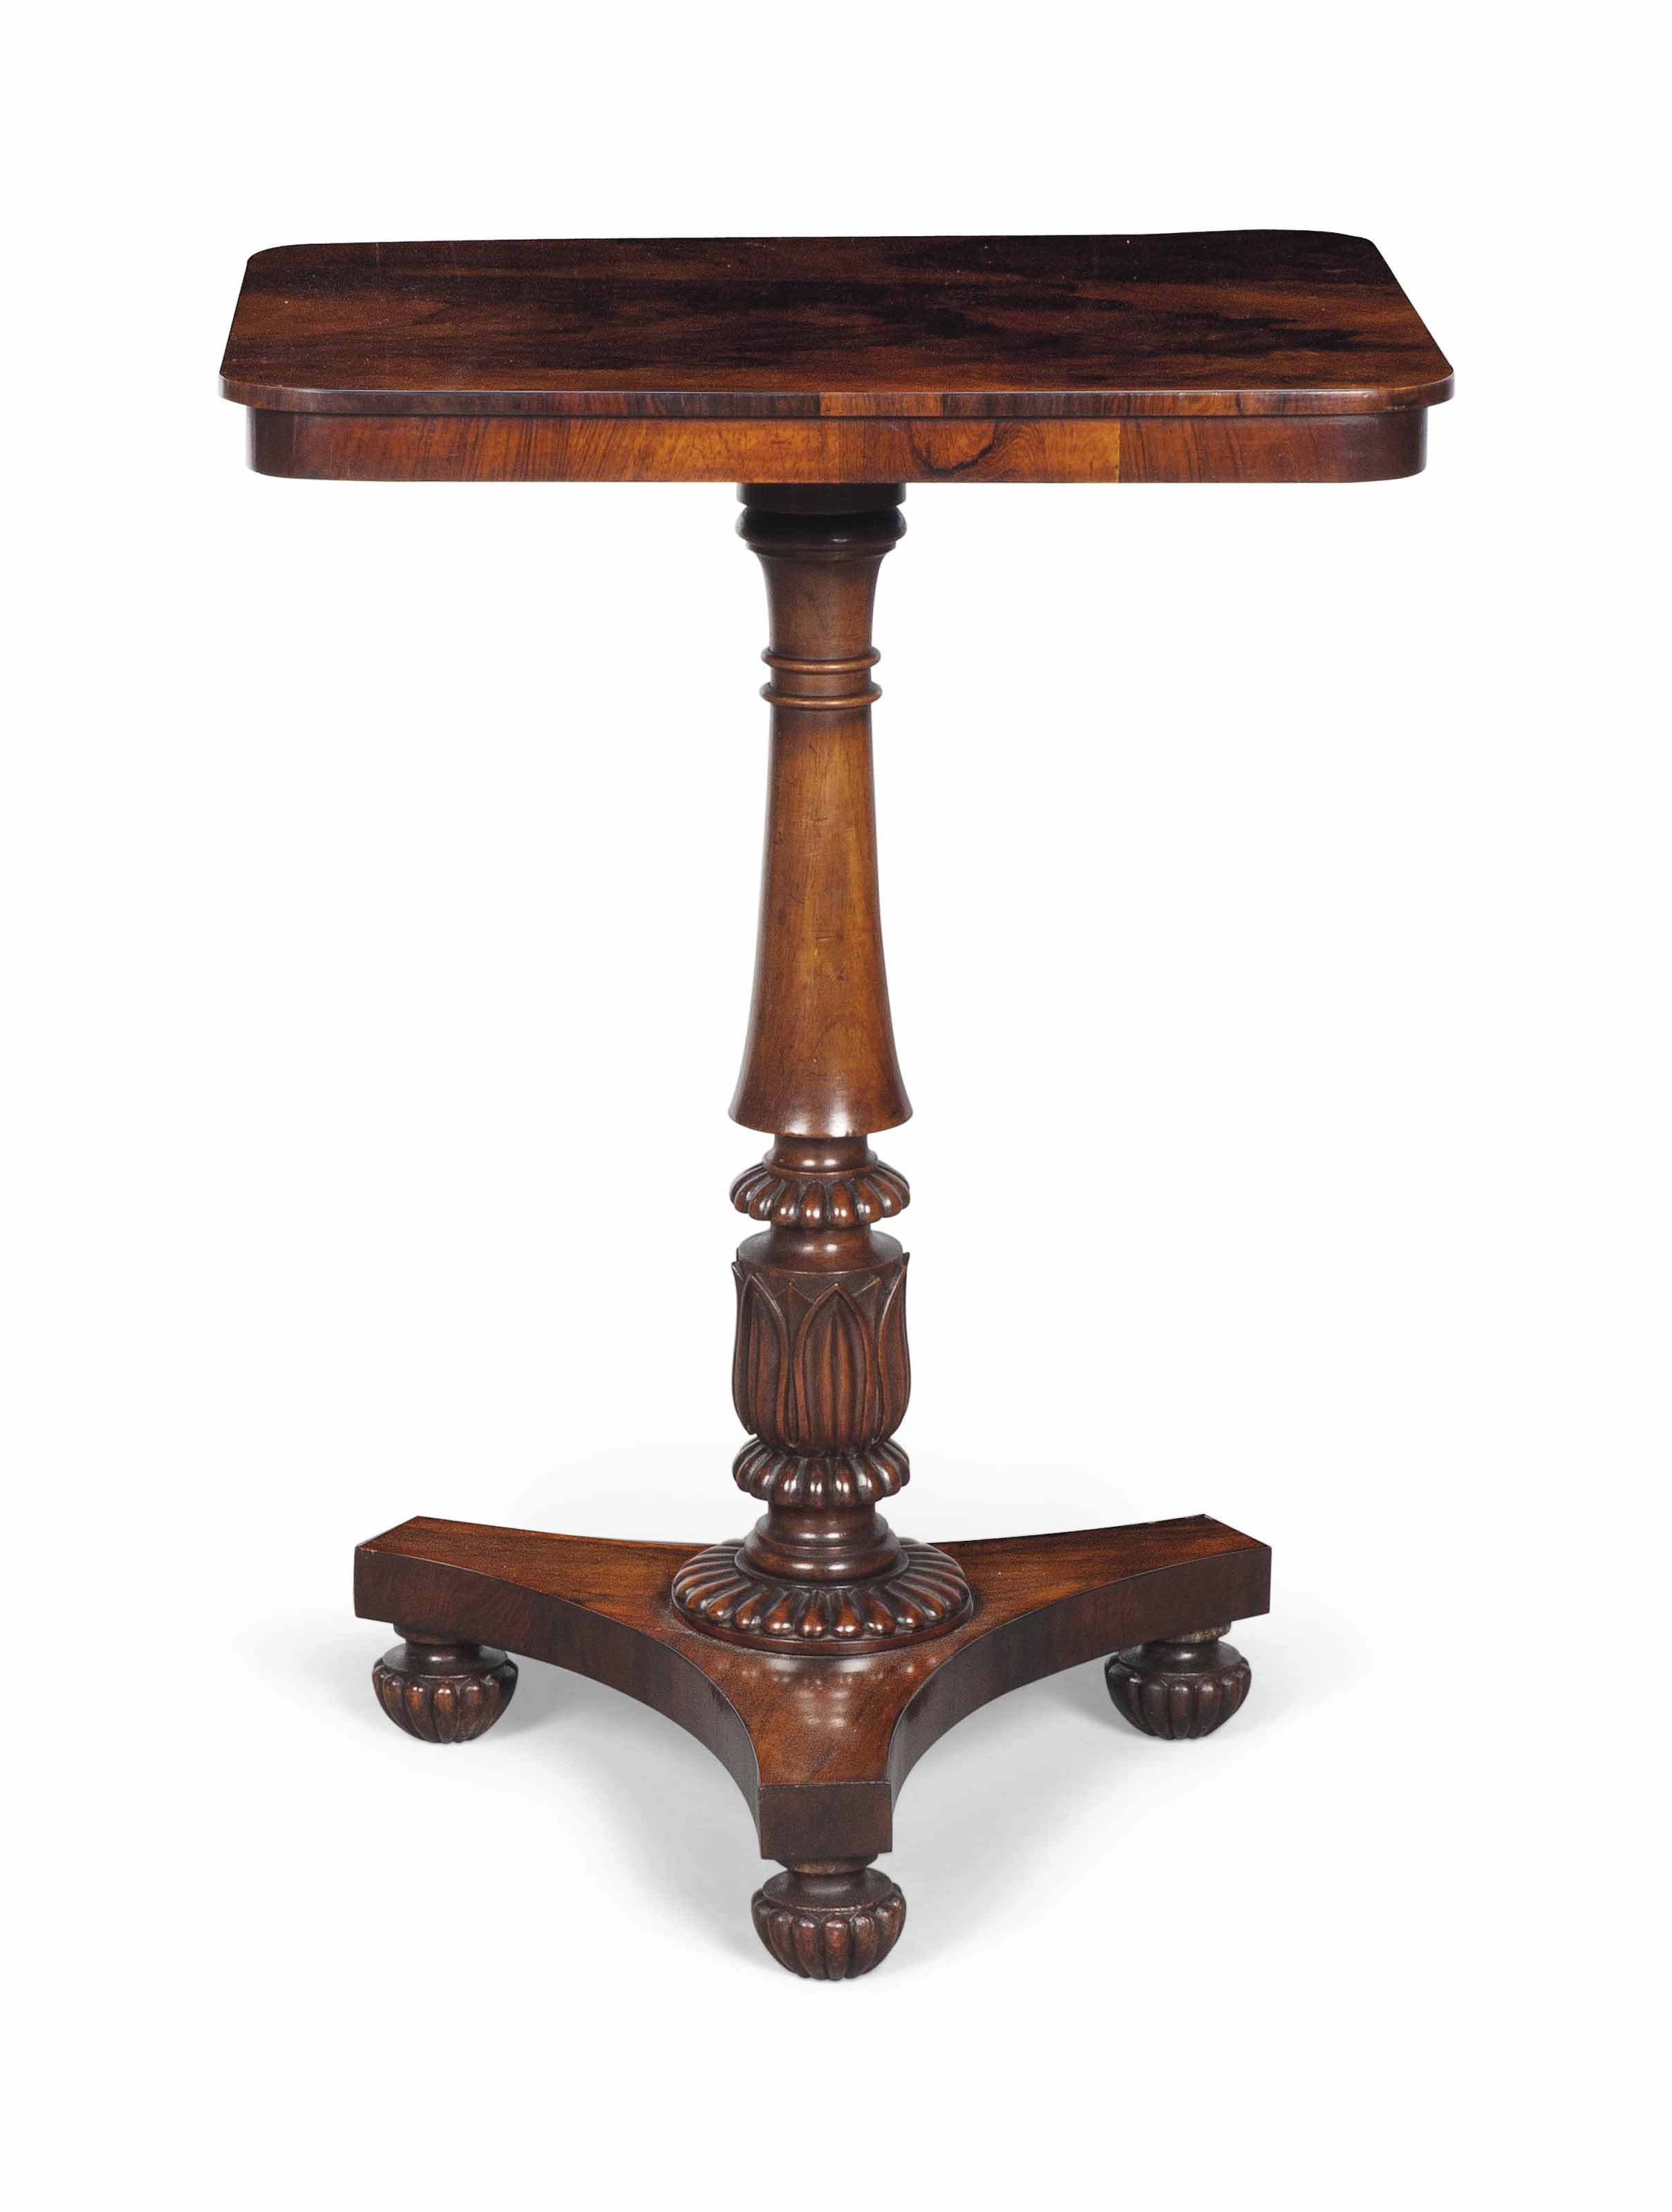 A GEORGE IV ROSEWOOD OCCASIONA